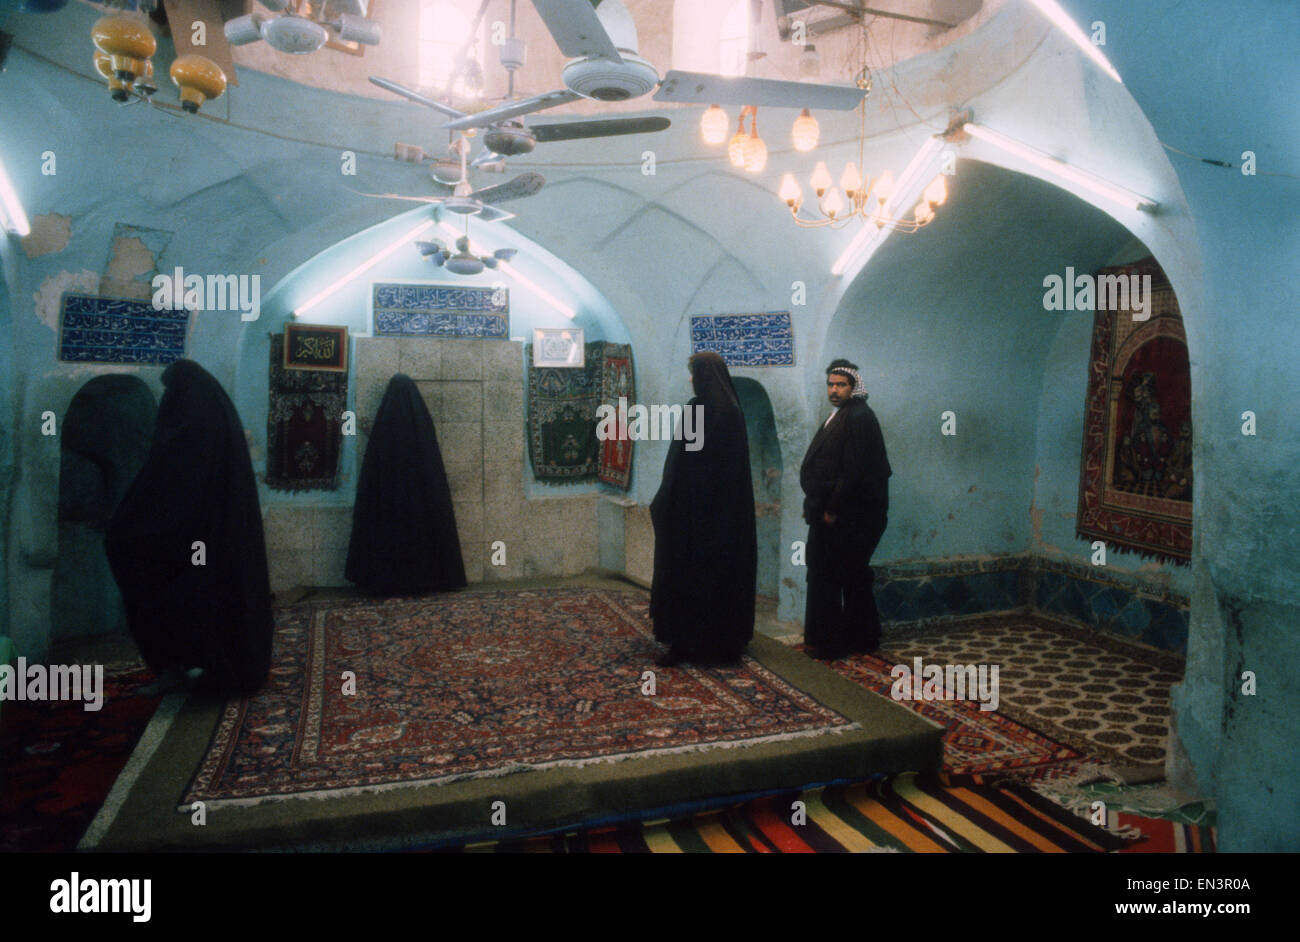 interior of house of Imam Ali in holy Shiite city of Kufa, Iraq - Stock Image